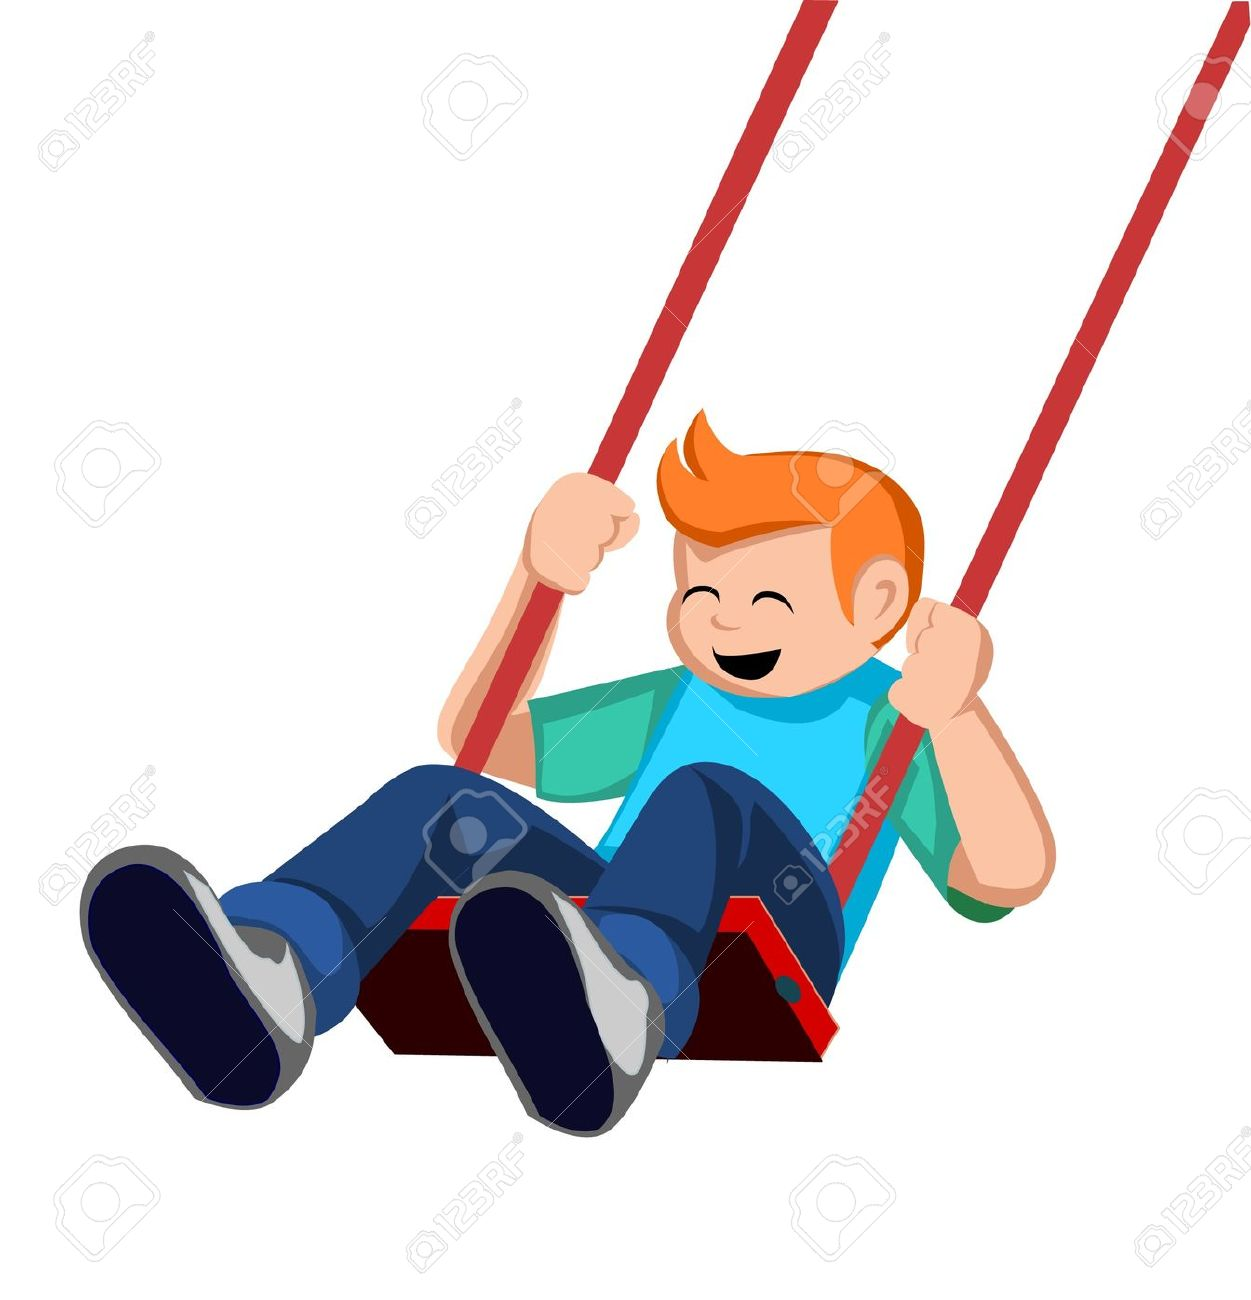 boys swinging pictures of Cartoon